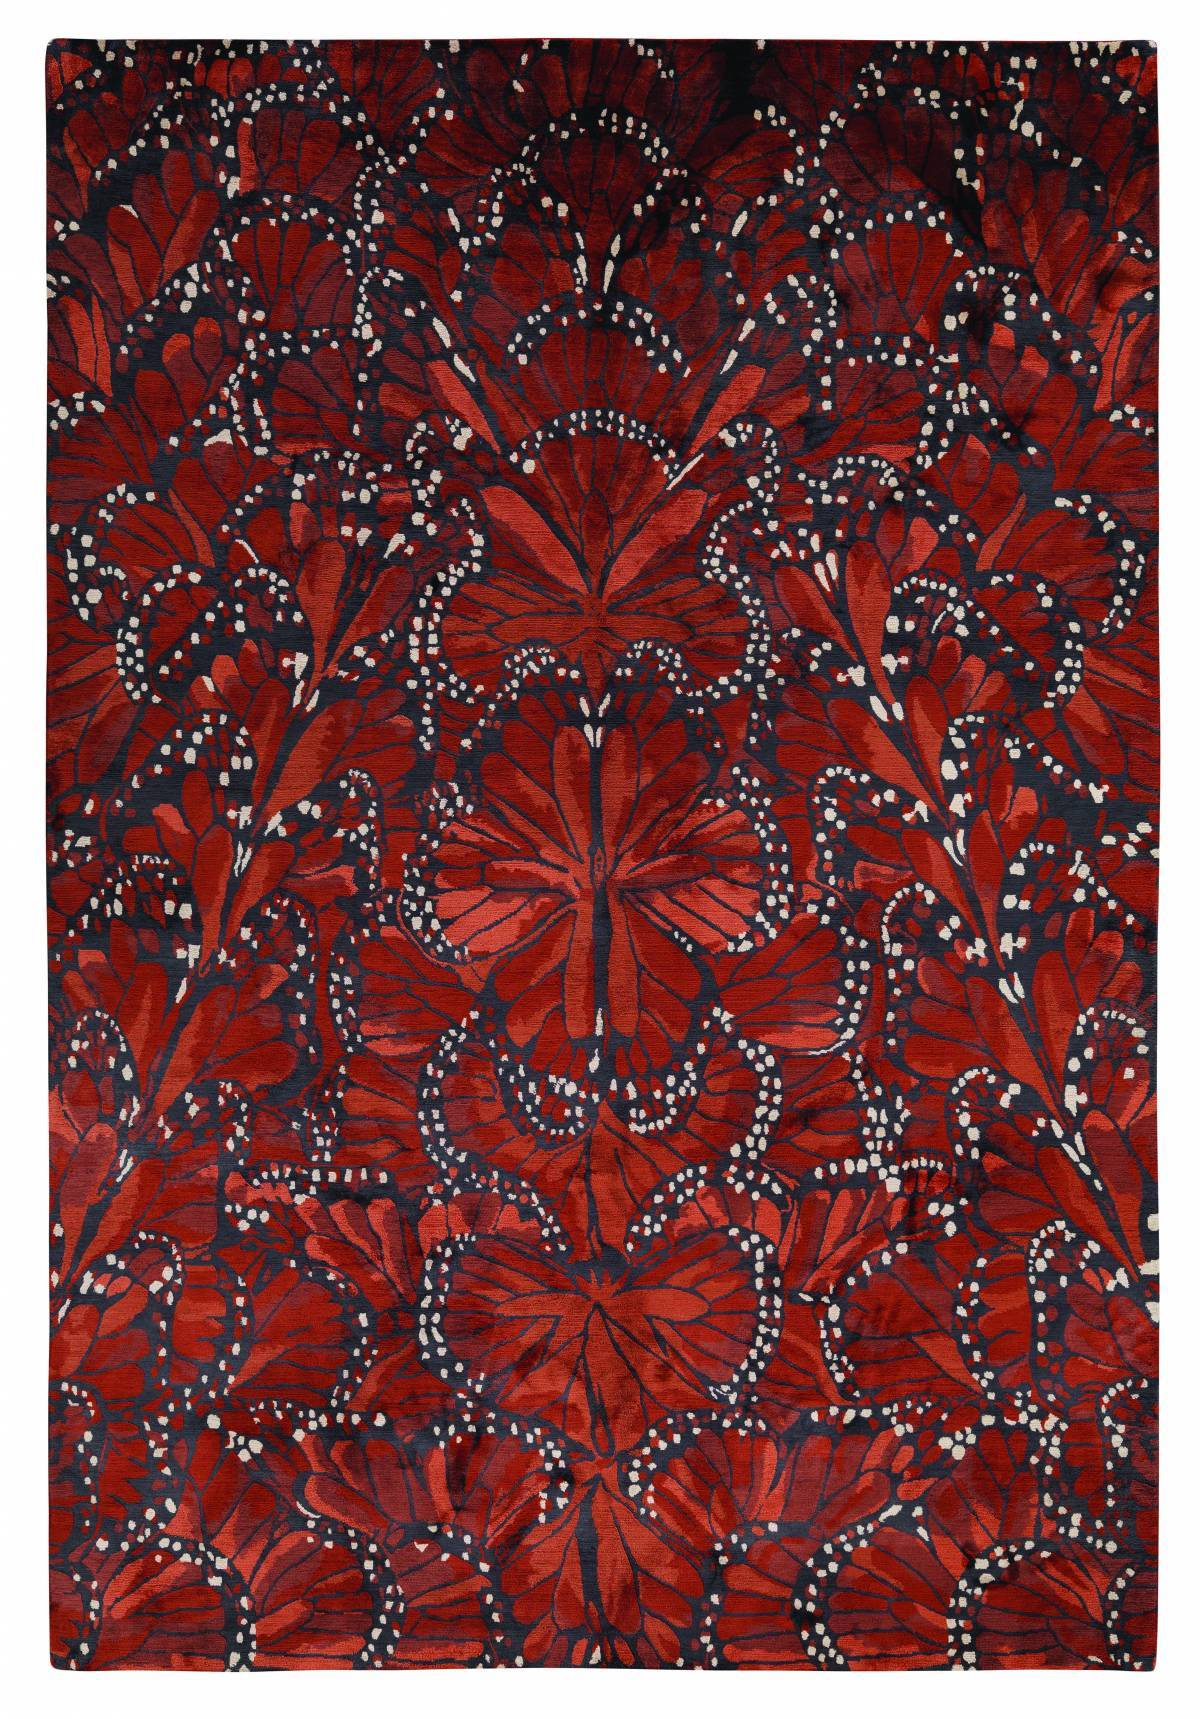 Alexander Mcqueen Collaboration With The Rug Company